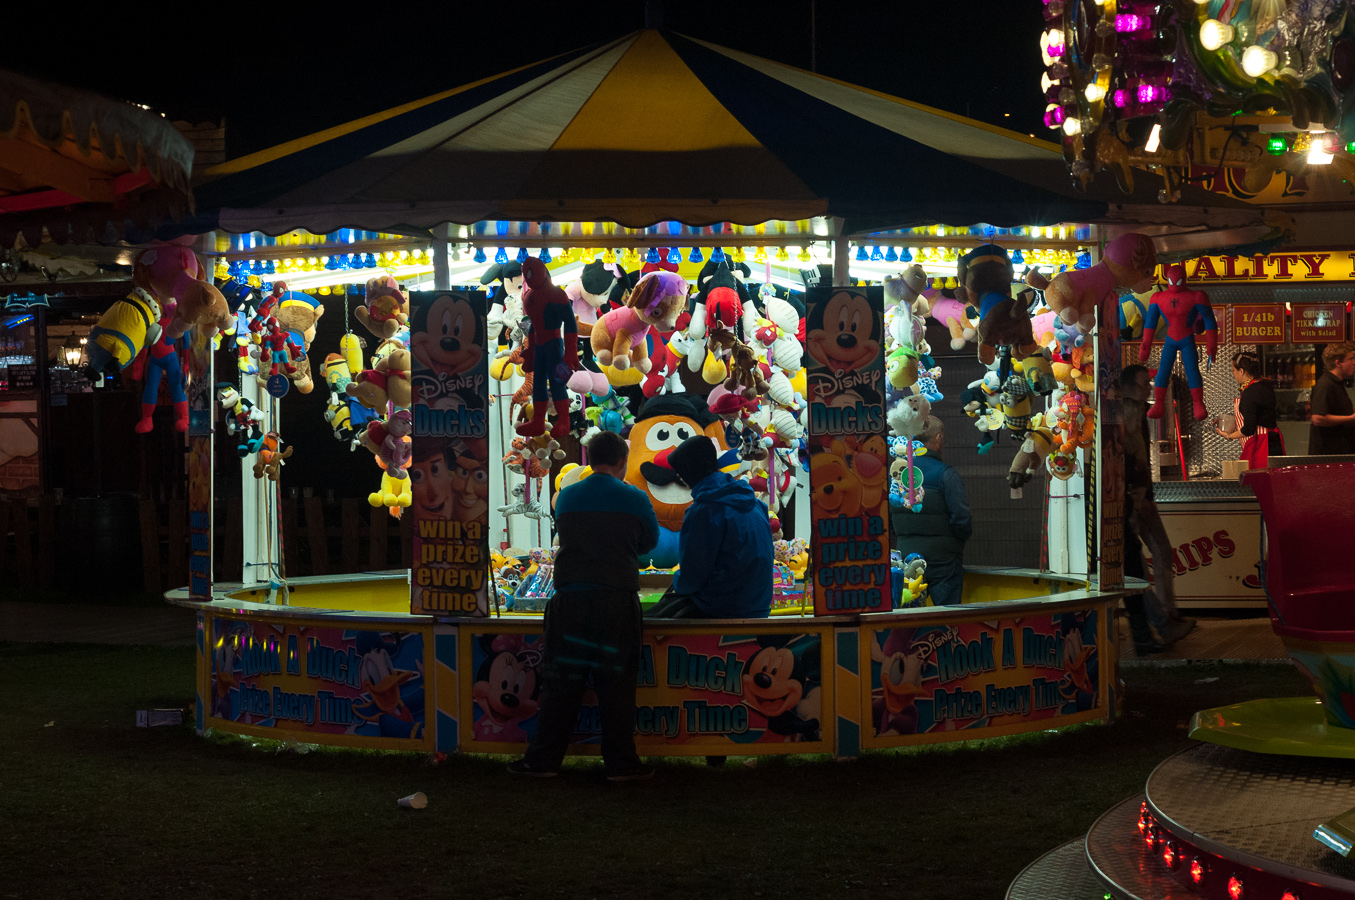 goose-fair-attractions.jpg